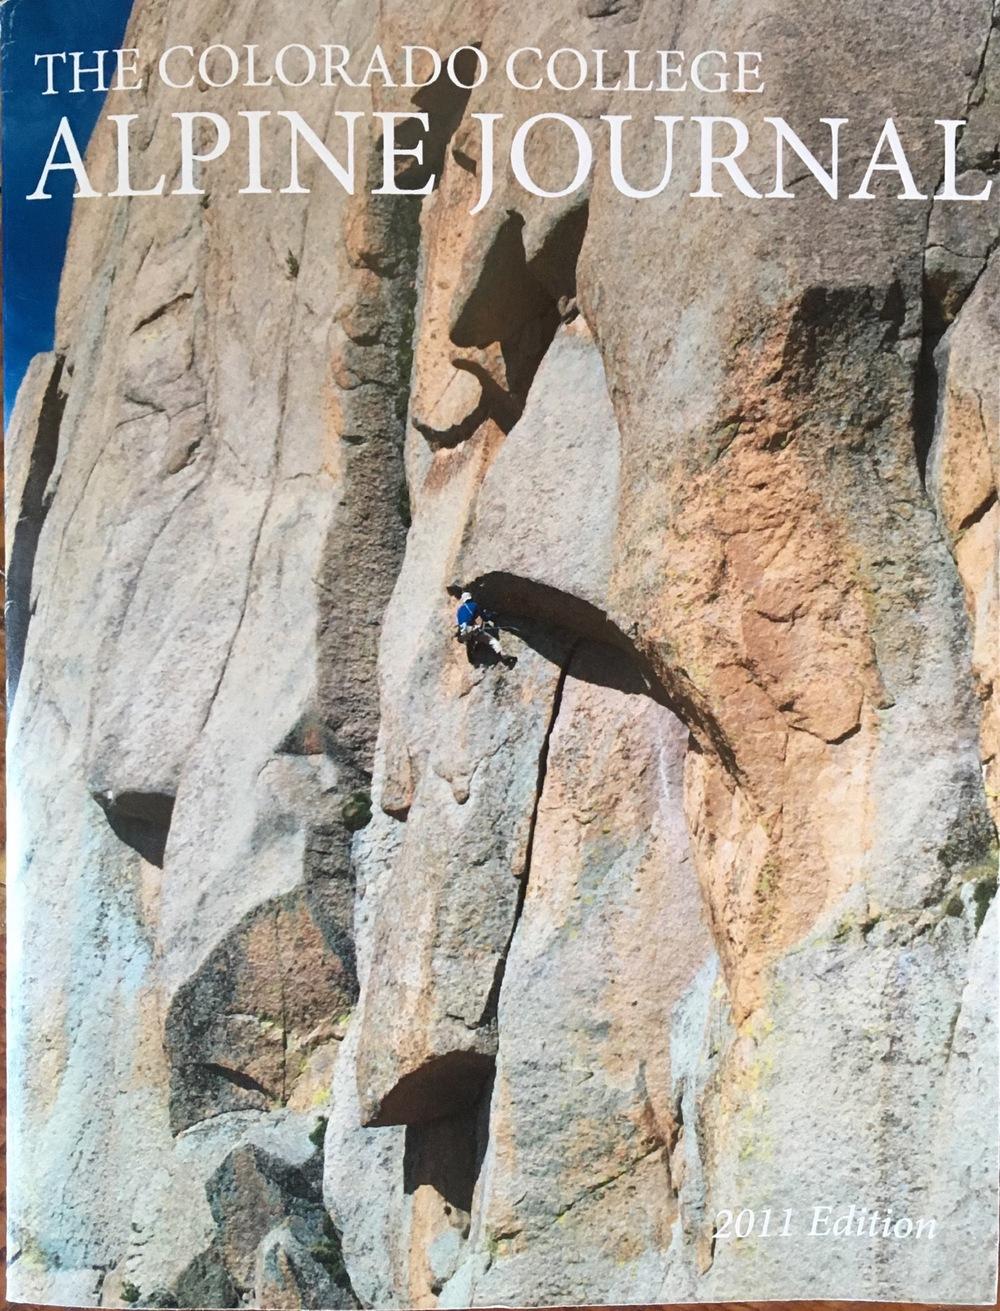 Promiscuous  Trip report: A first ascent near Yellowstone National Park.  Colorado College Alpine Journal, 2011